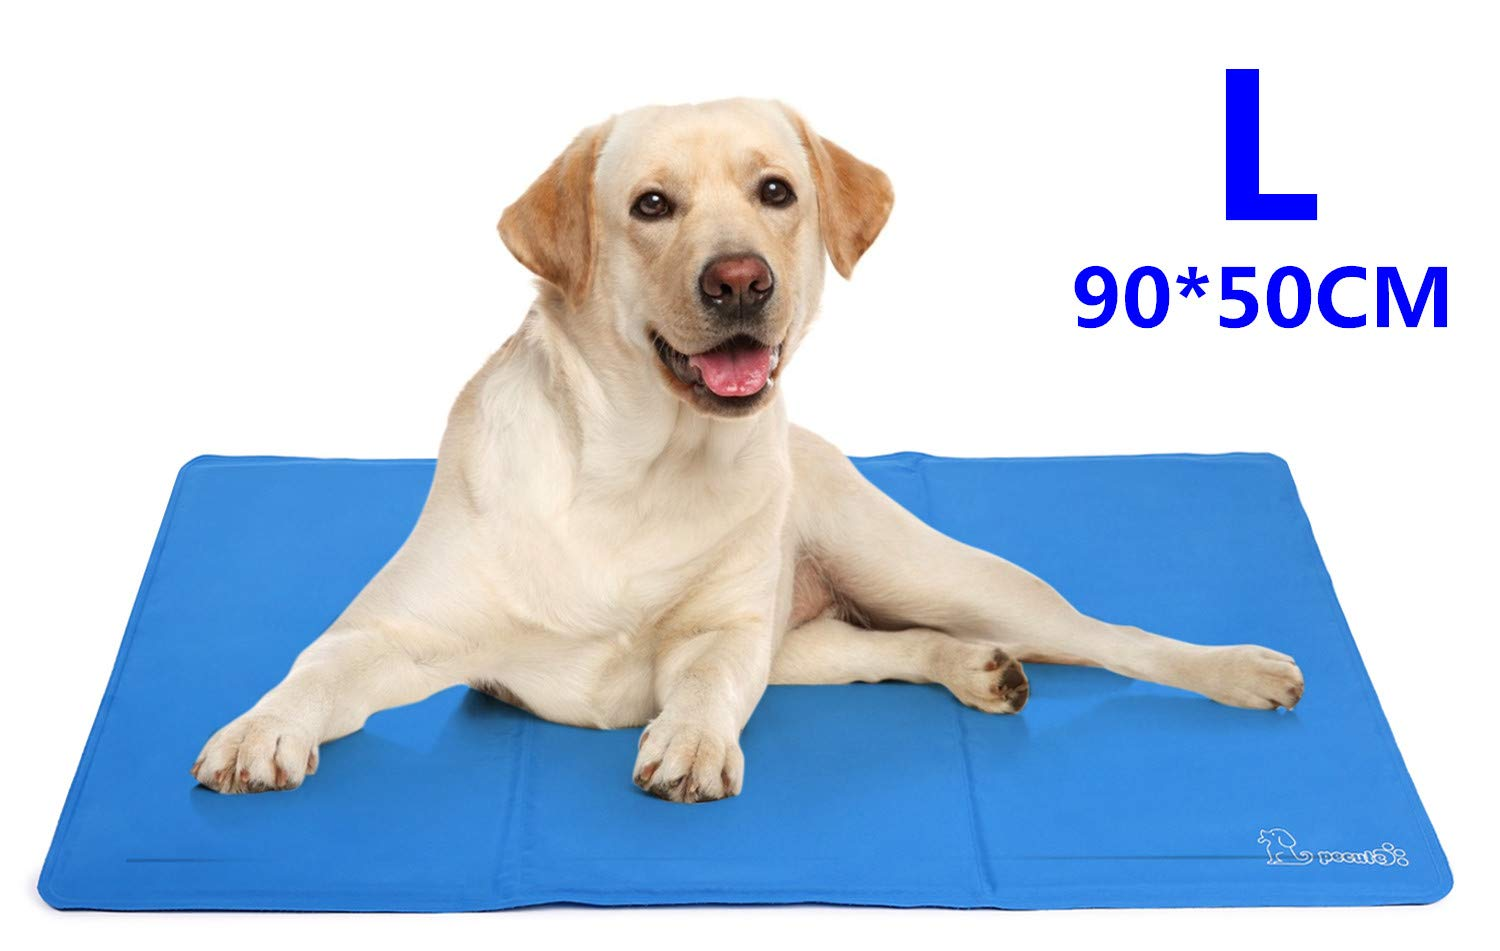 Pecute Dog Cooling Mat Large 90x50cm, Durable Pet Cool Mat